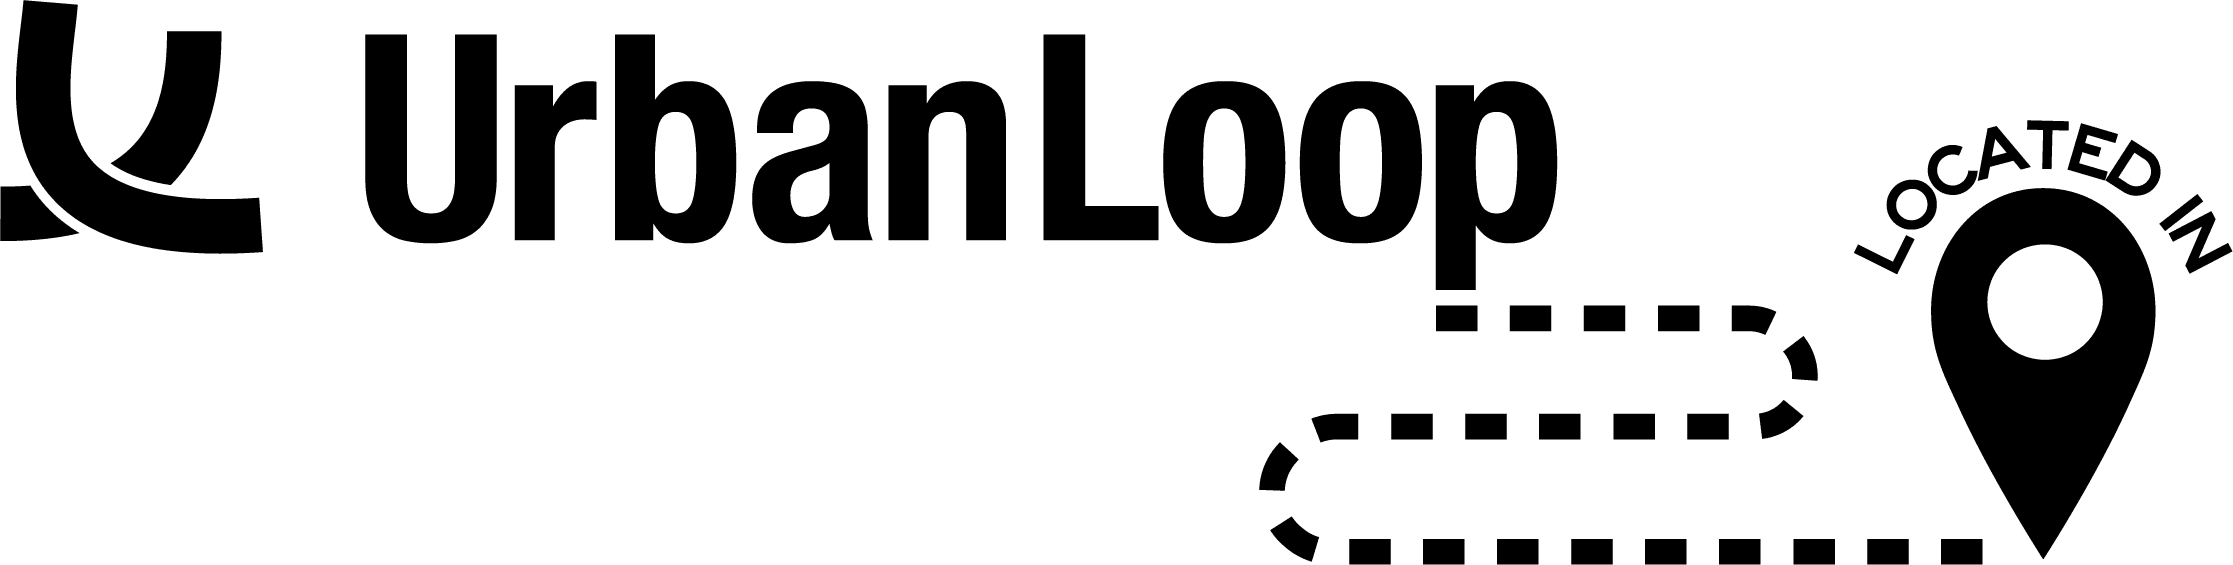 Urban Loop Black Logo